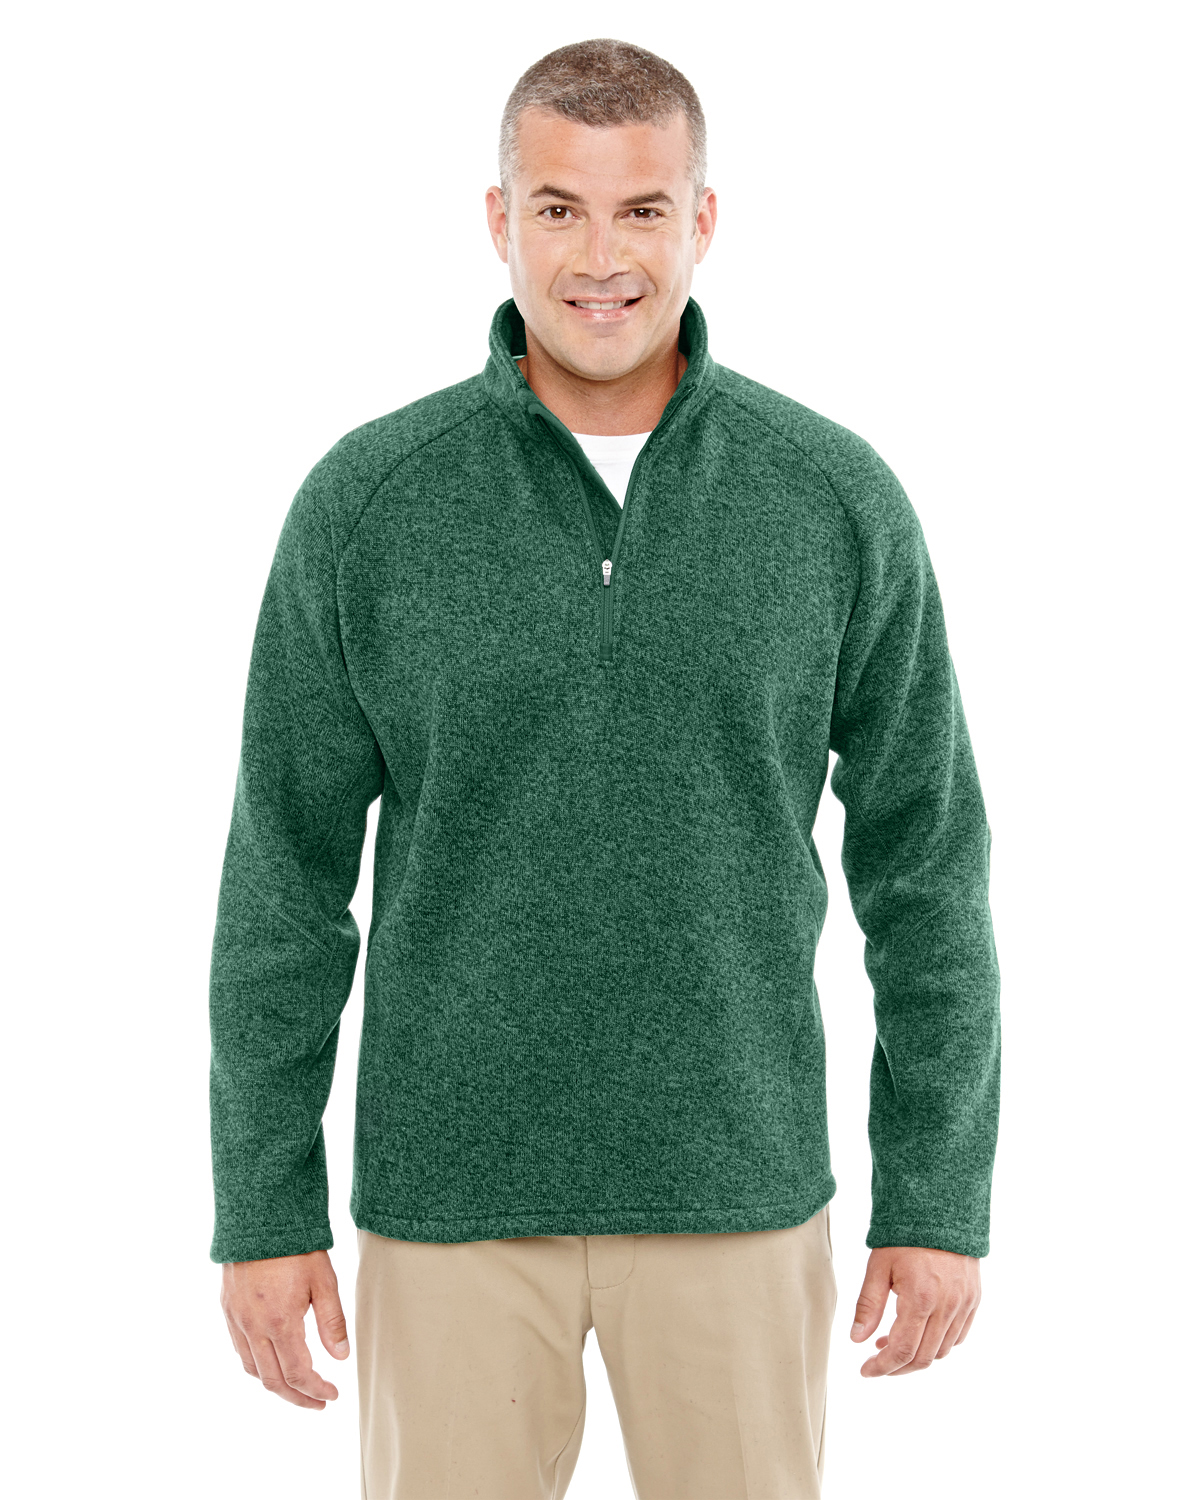 Devon & Jones DG792 - Men's Bristol Sweater Fleece Half-Zip